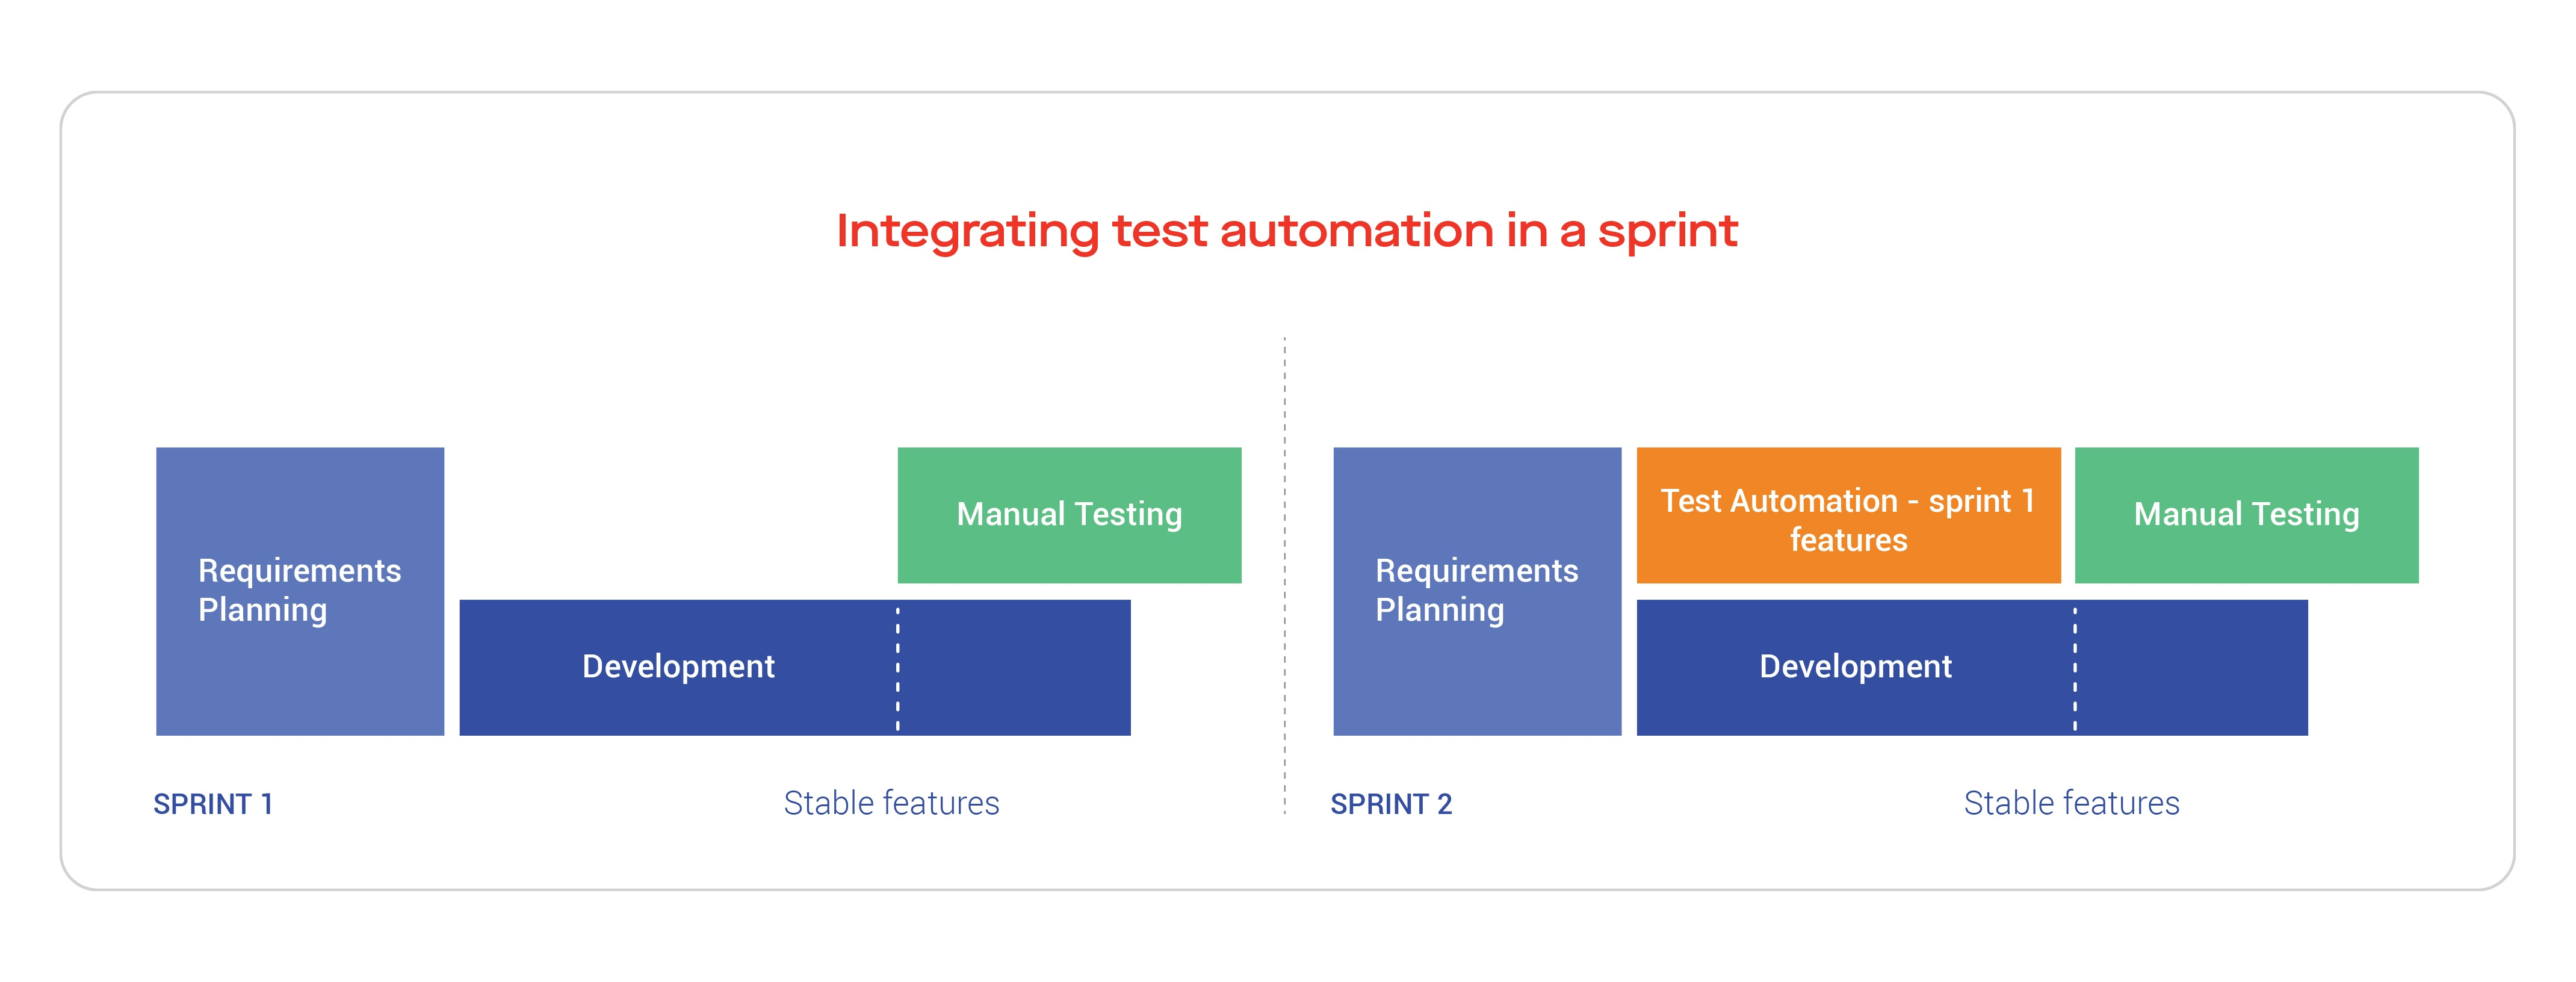 Integrating test automation in a sprint